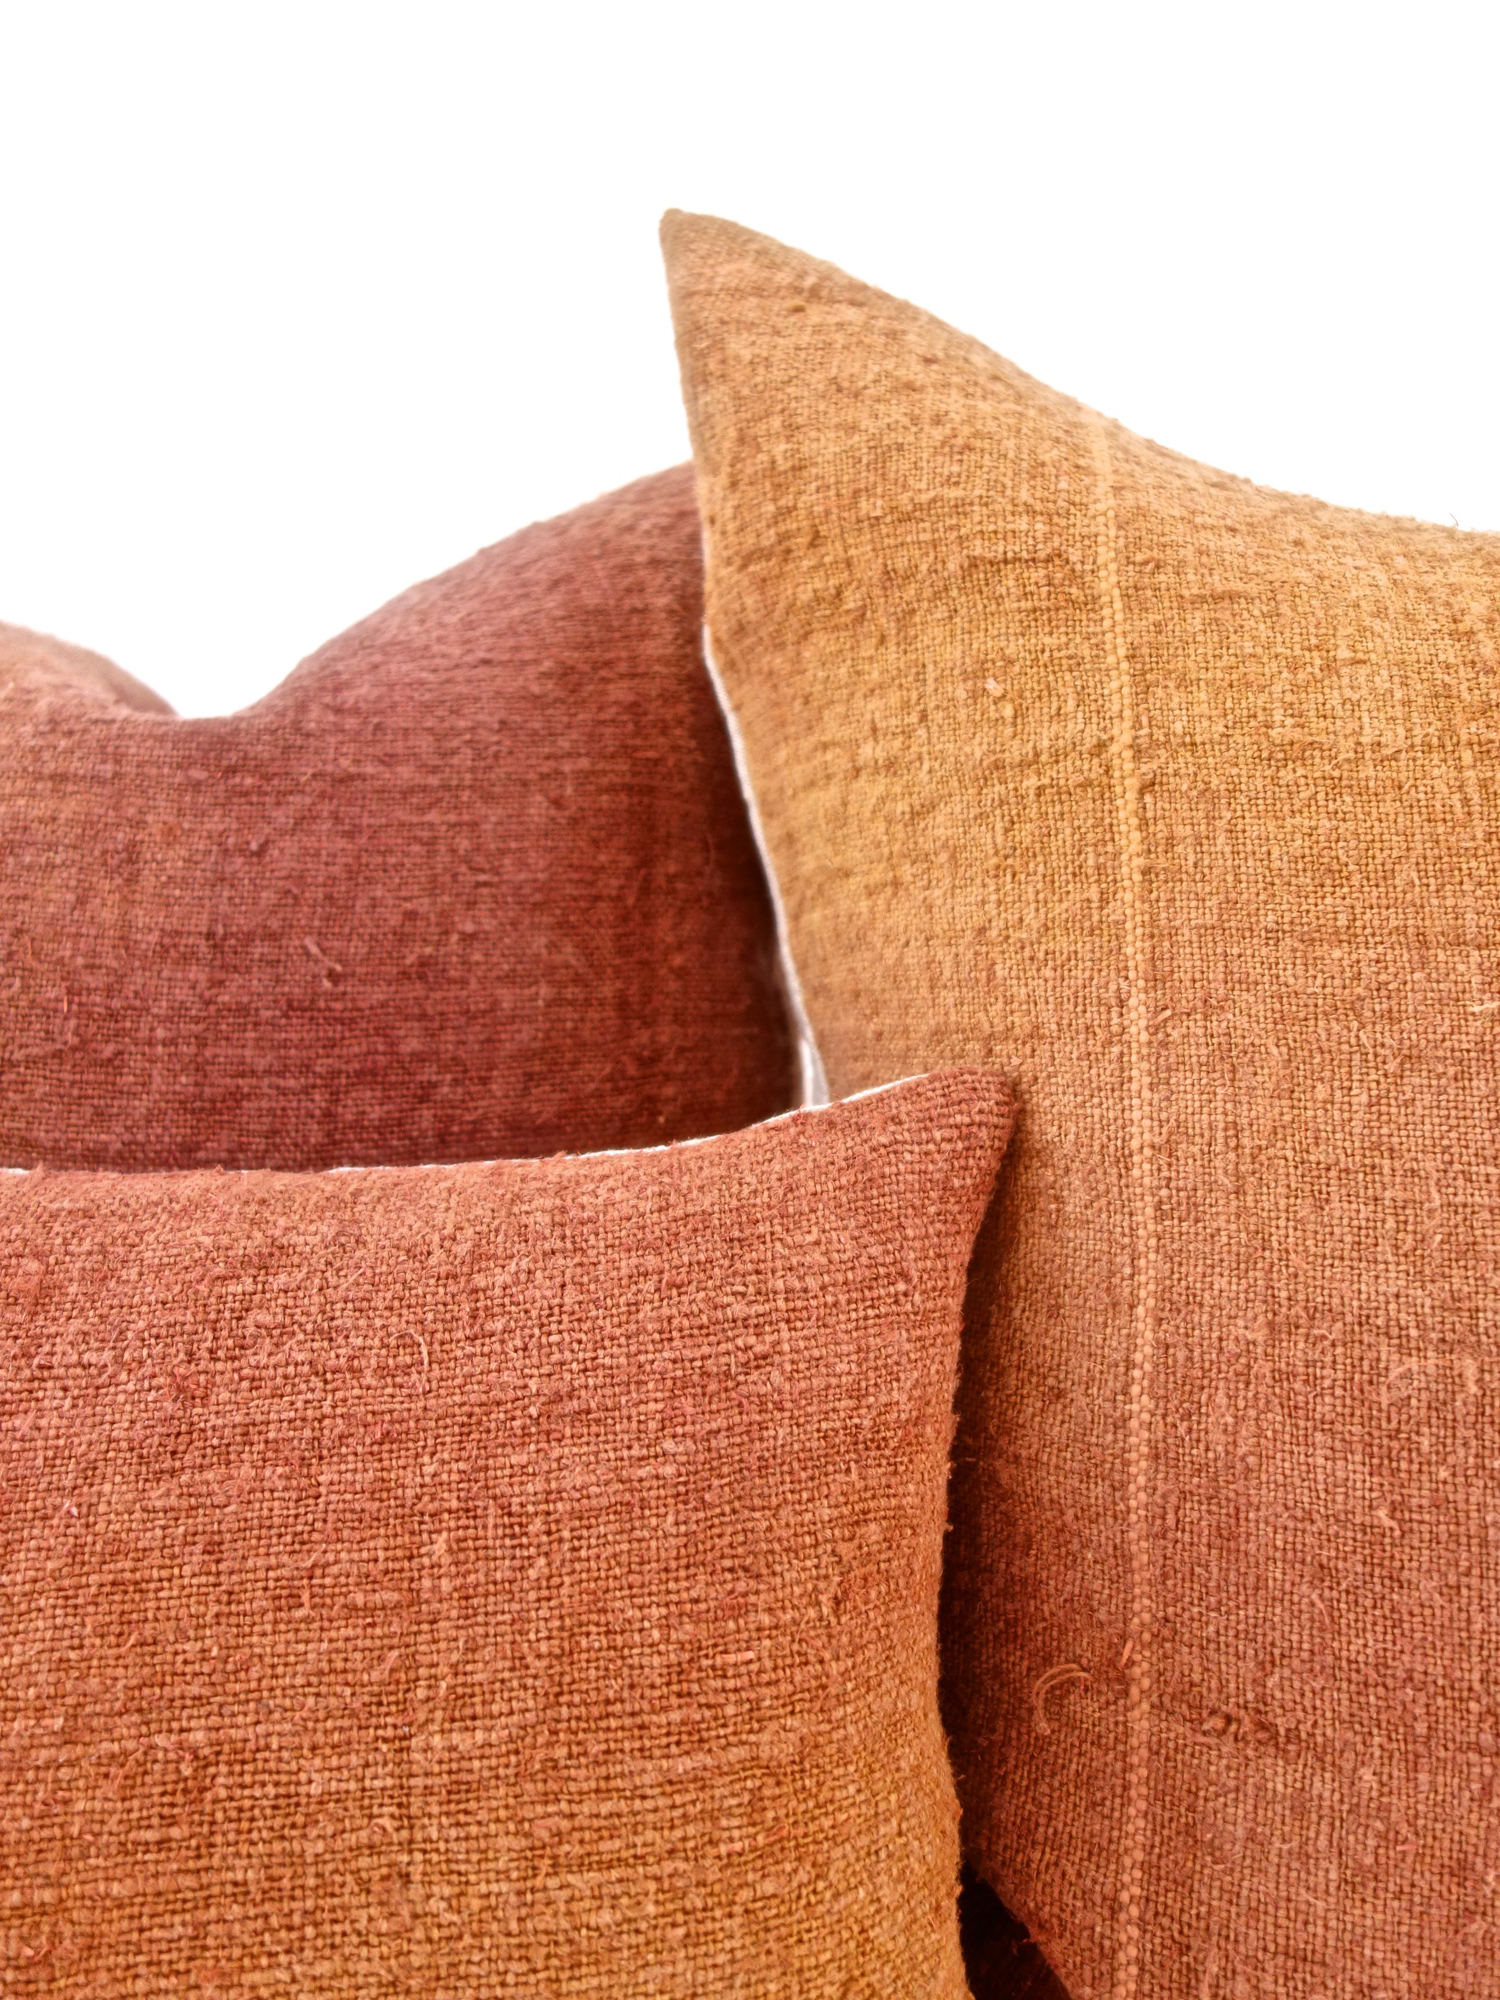 espanyolet_vintage_hemp_rust_pillows2.jpg